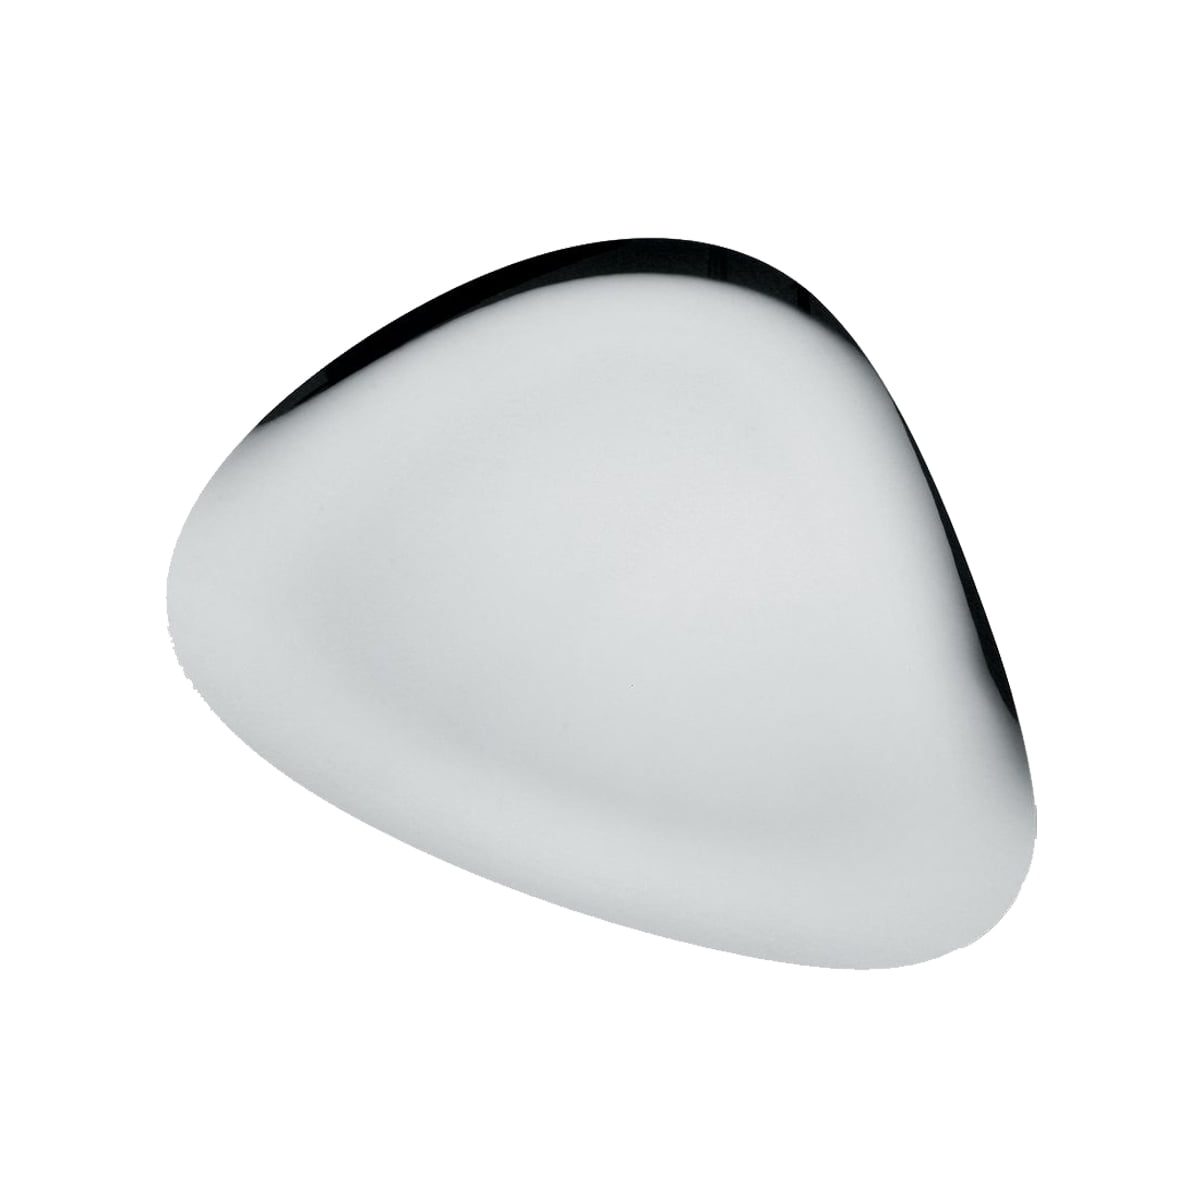 colombina collection tray by alessi - alessi  colombina tray